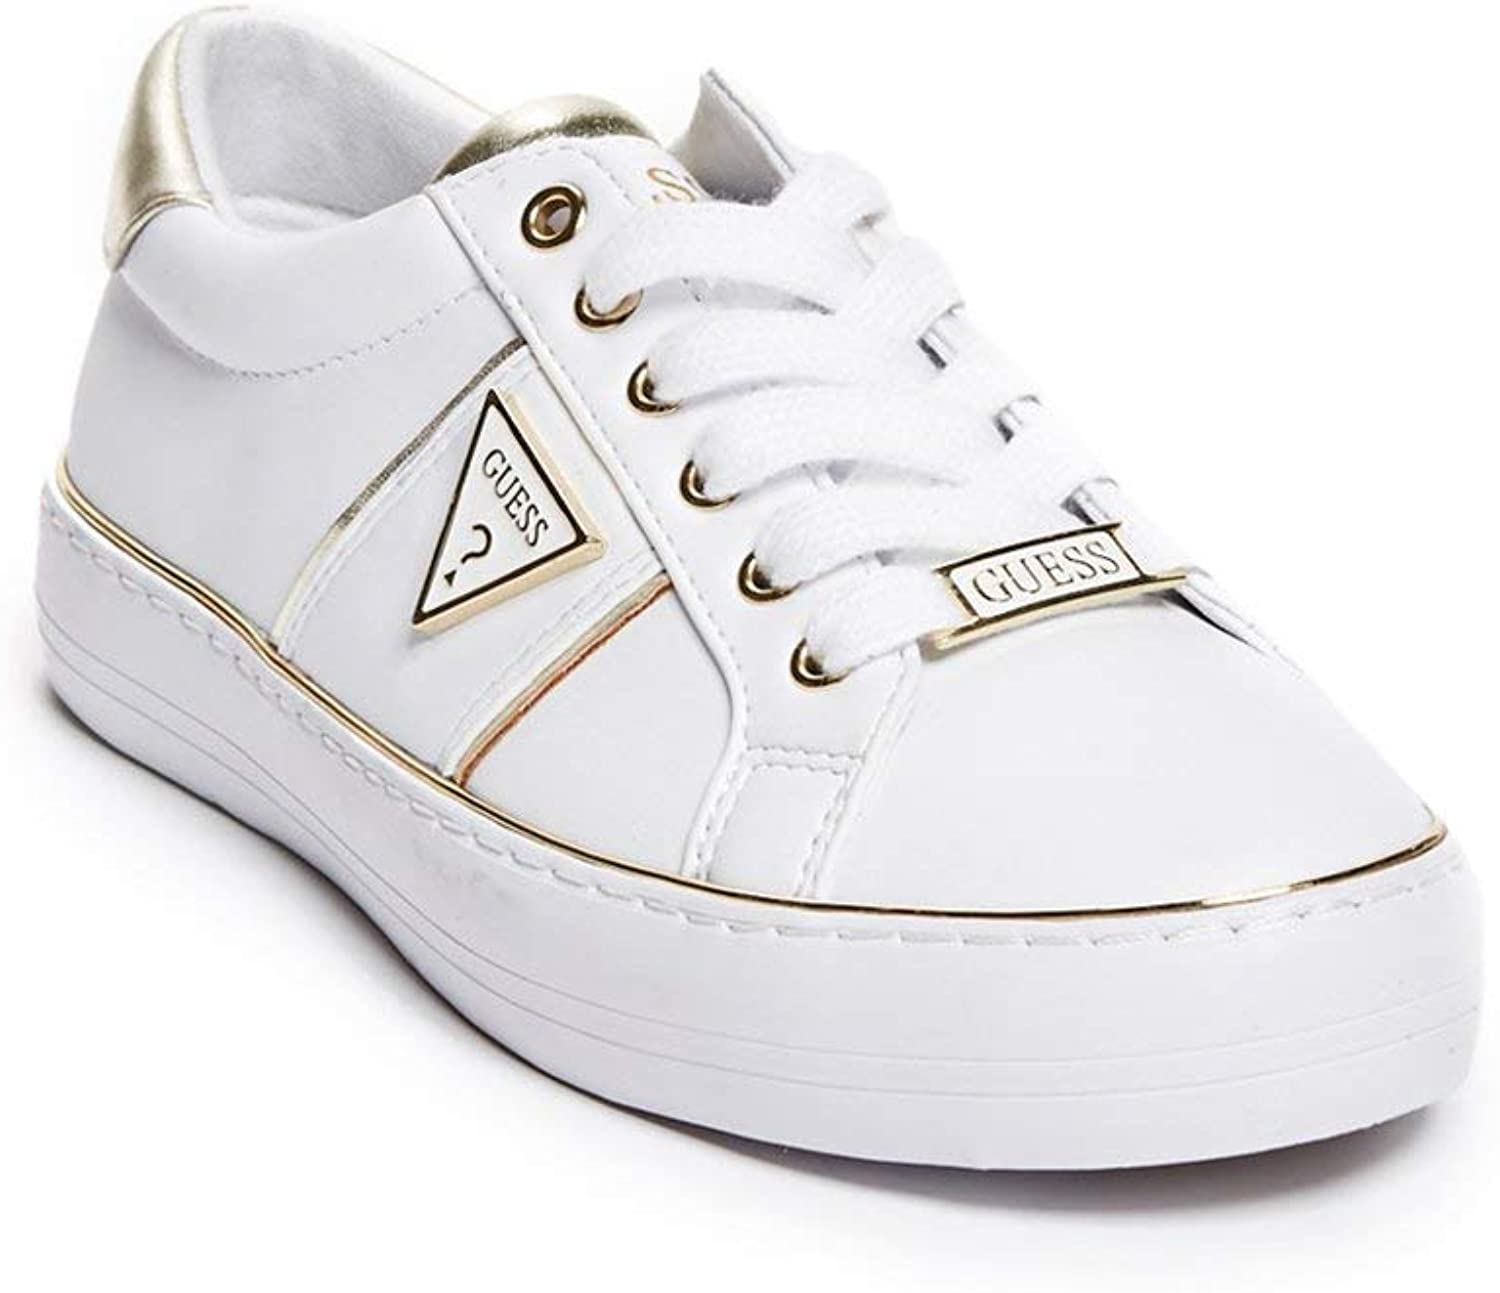 Guess Factory Women's Gilda Logo Low-Top Sneakers